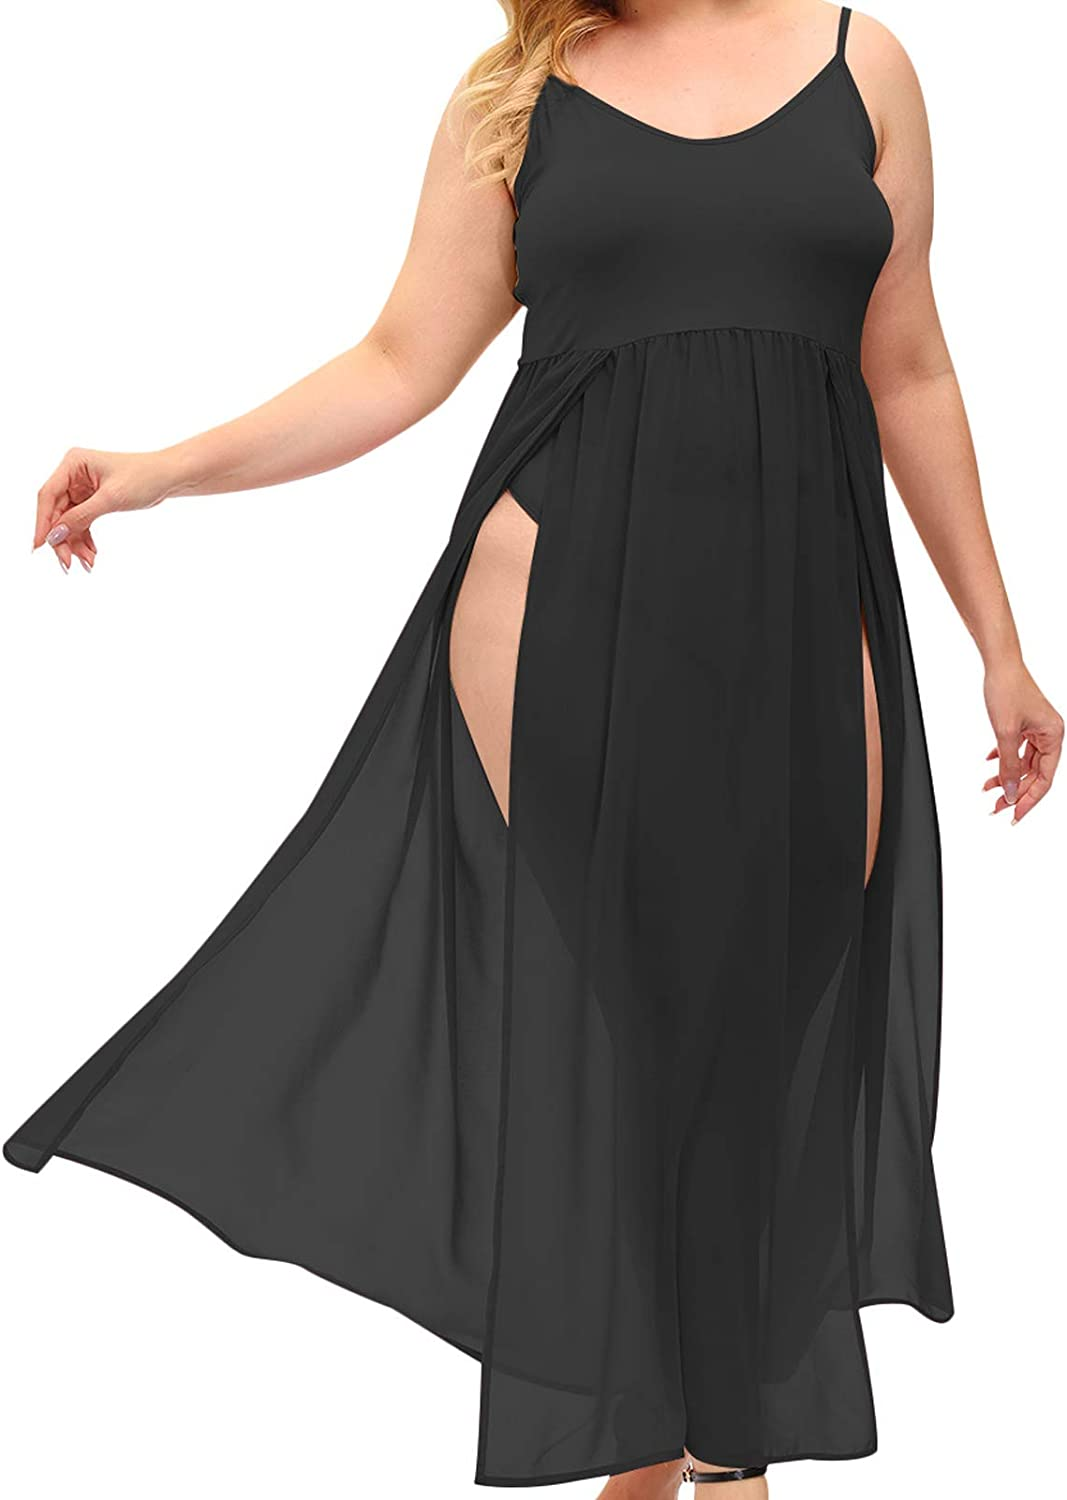 Lexiart Plus Size Sleeveless Spaghetti Strap Cover Up Beach Long Dress with Panty